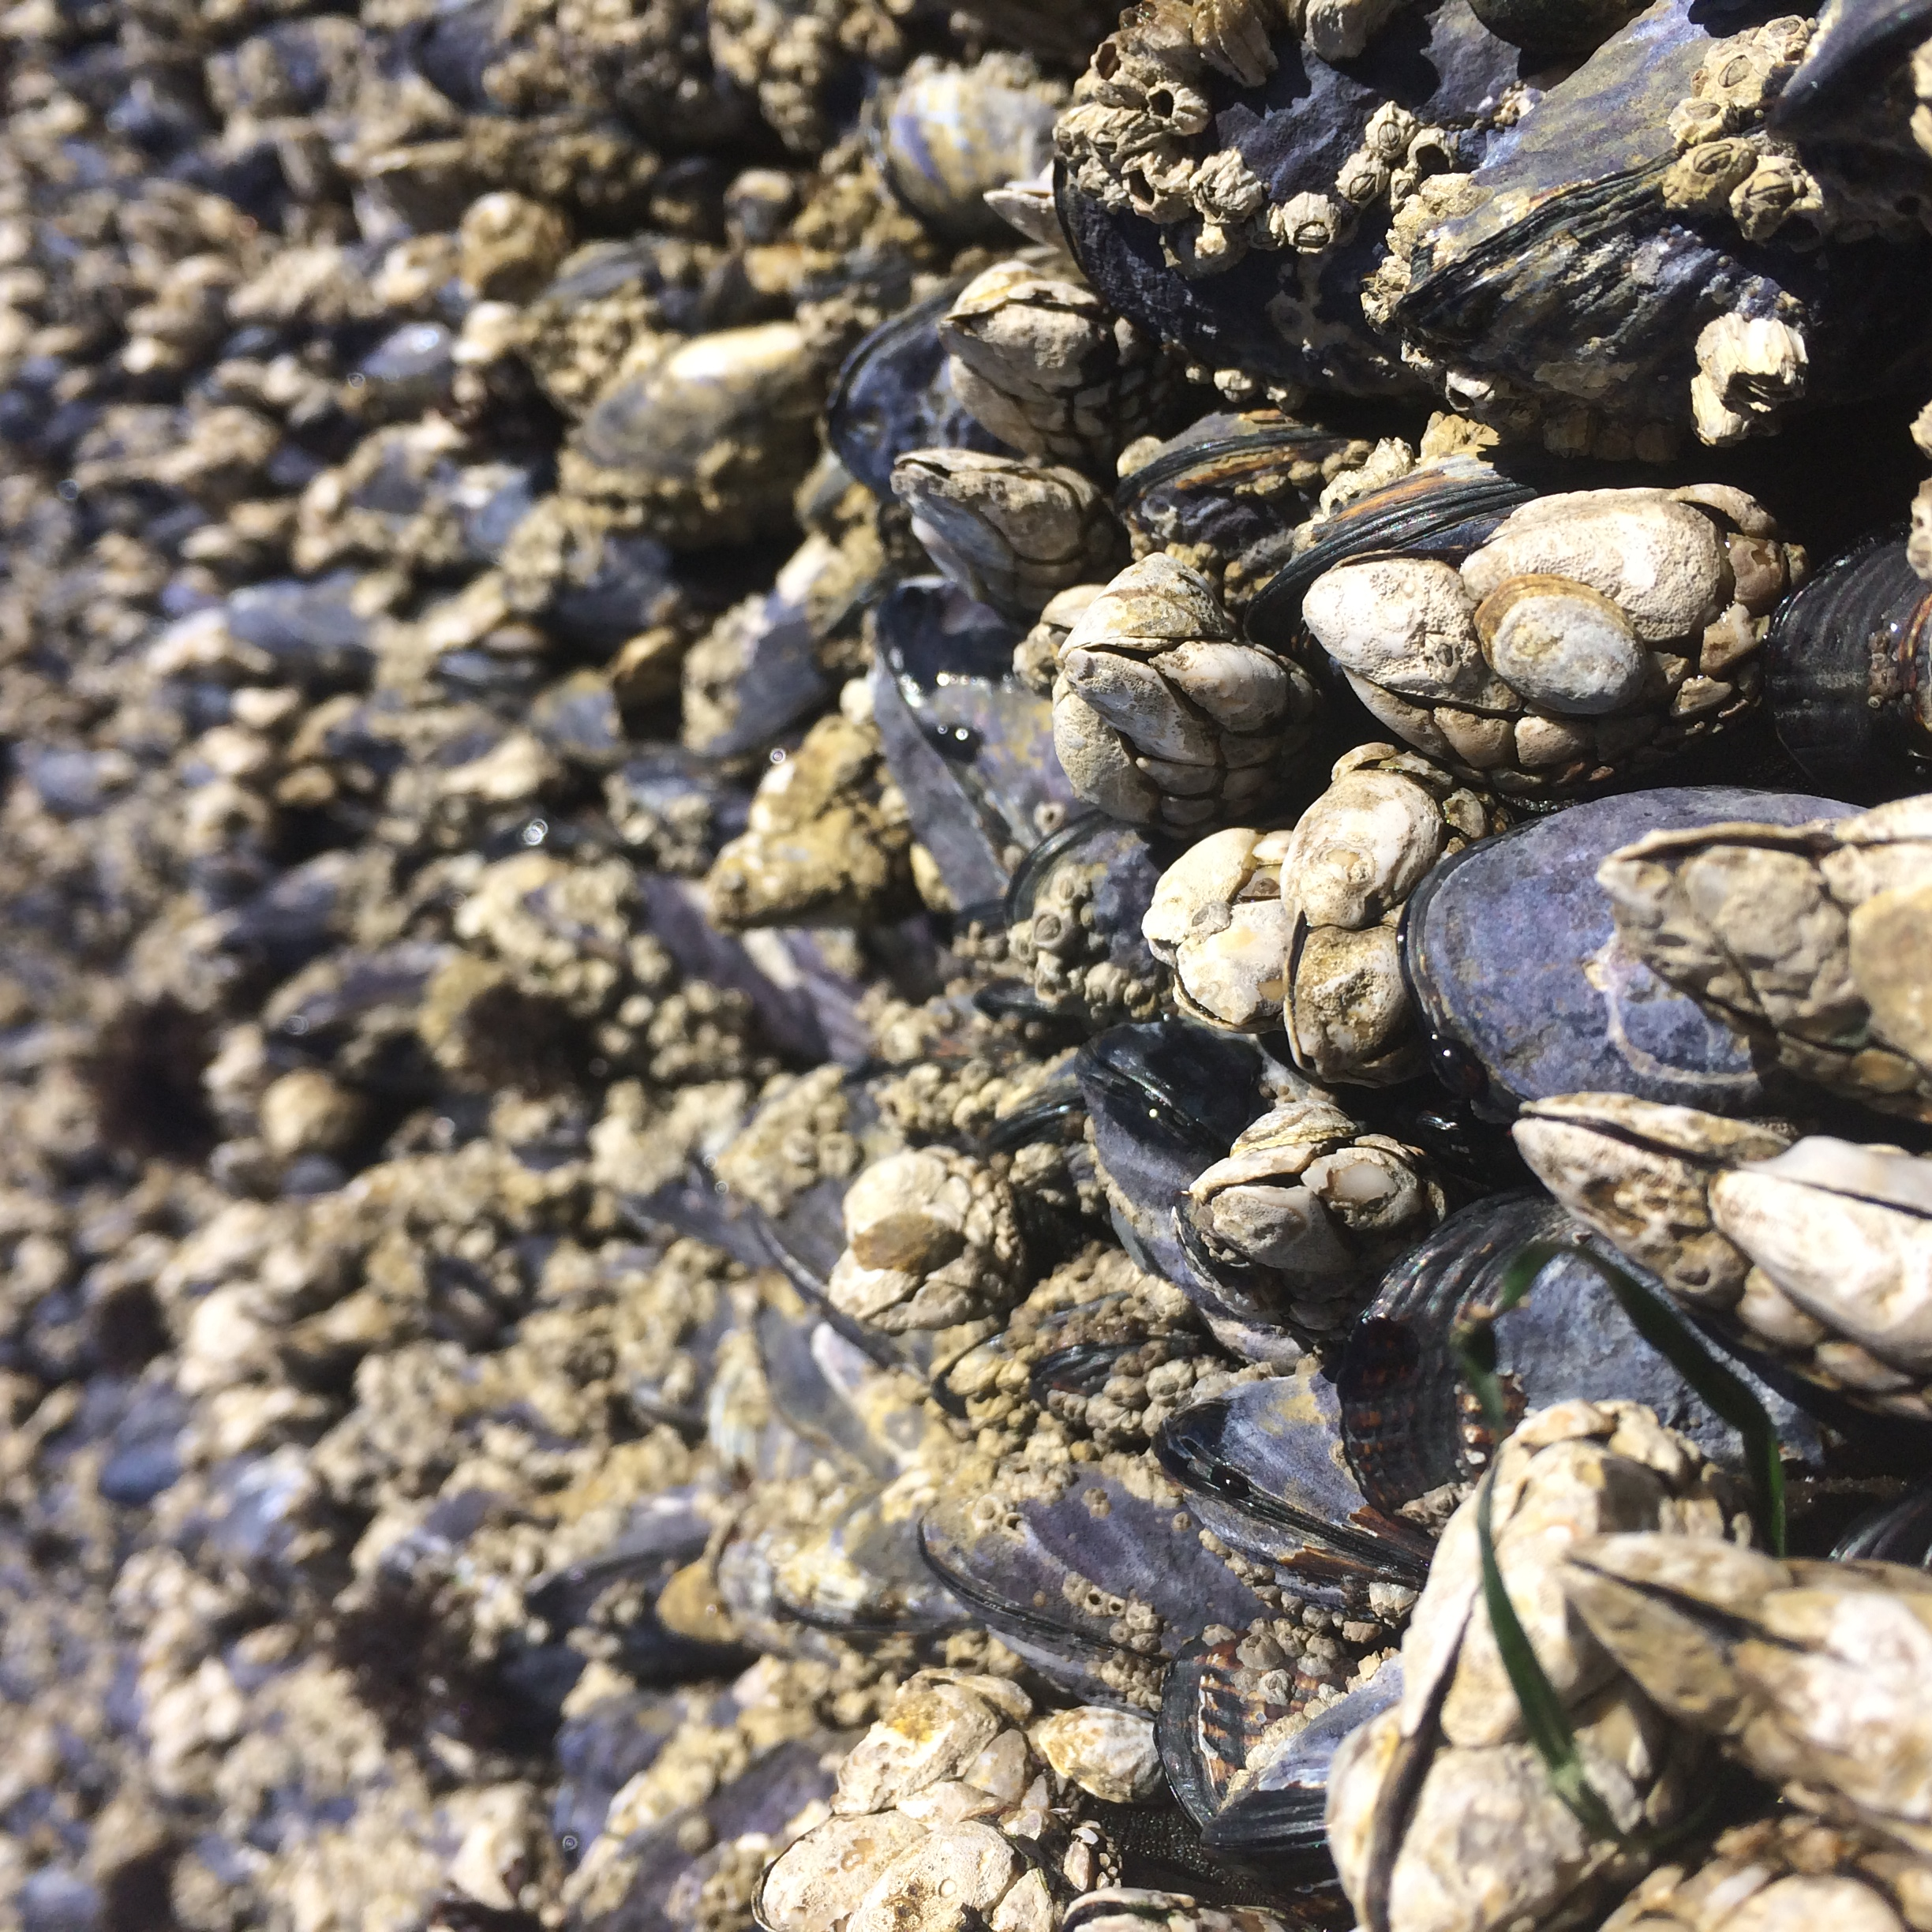 California Sea Mussels intermingling with Gooseneck Barnacles